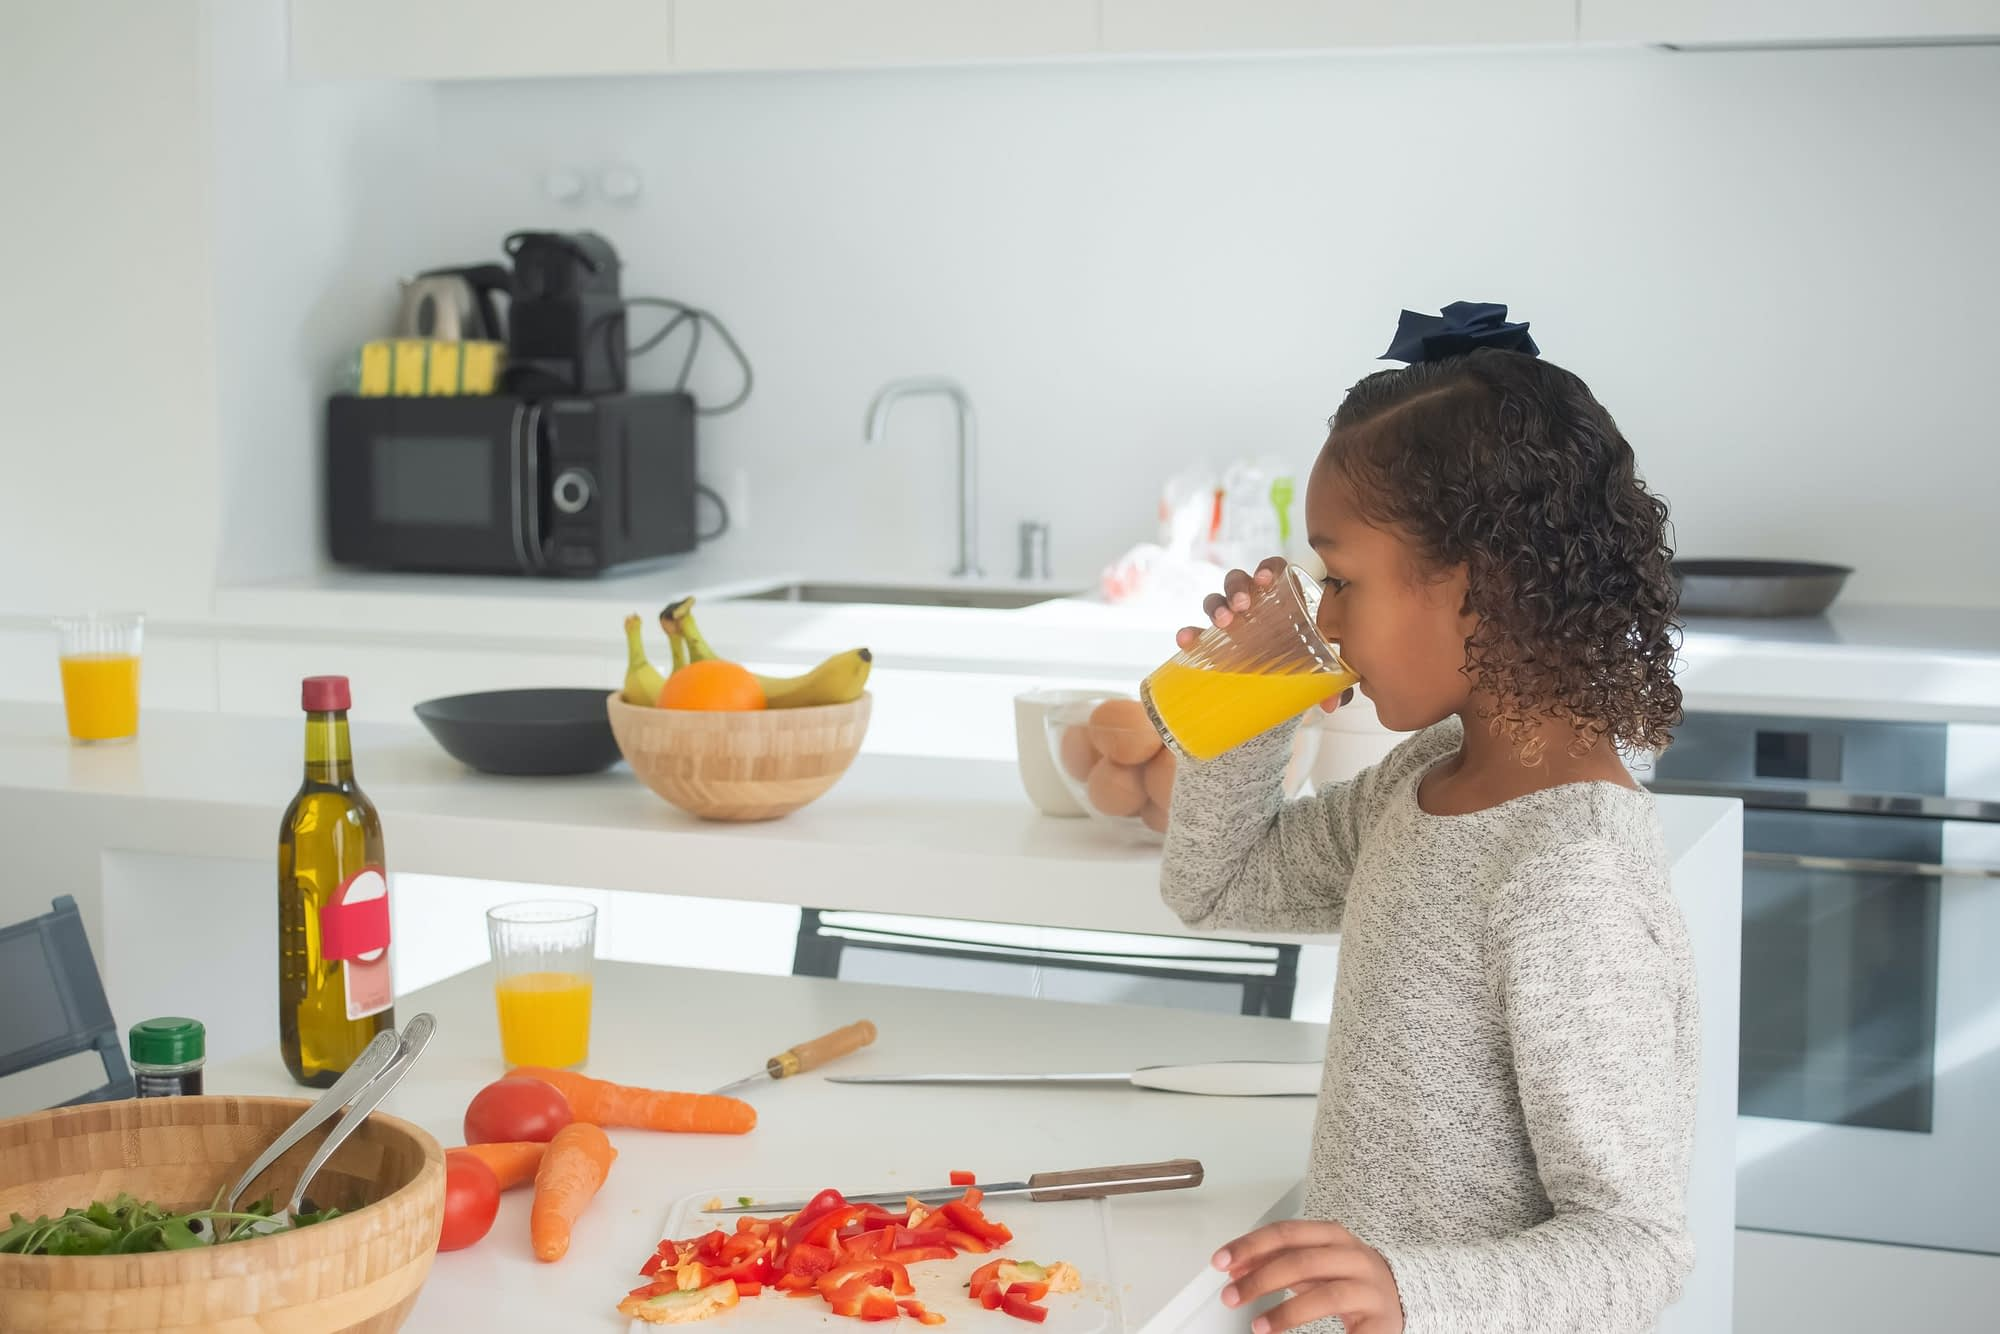 Giving immune-boosting juices for kids helps strengthen their little bodies, particularly their immune system.